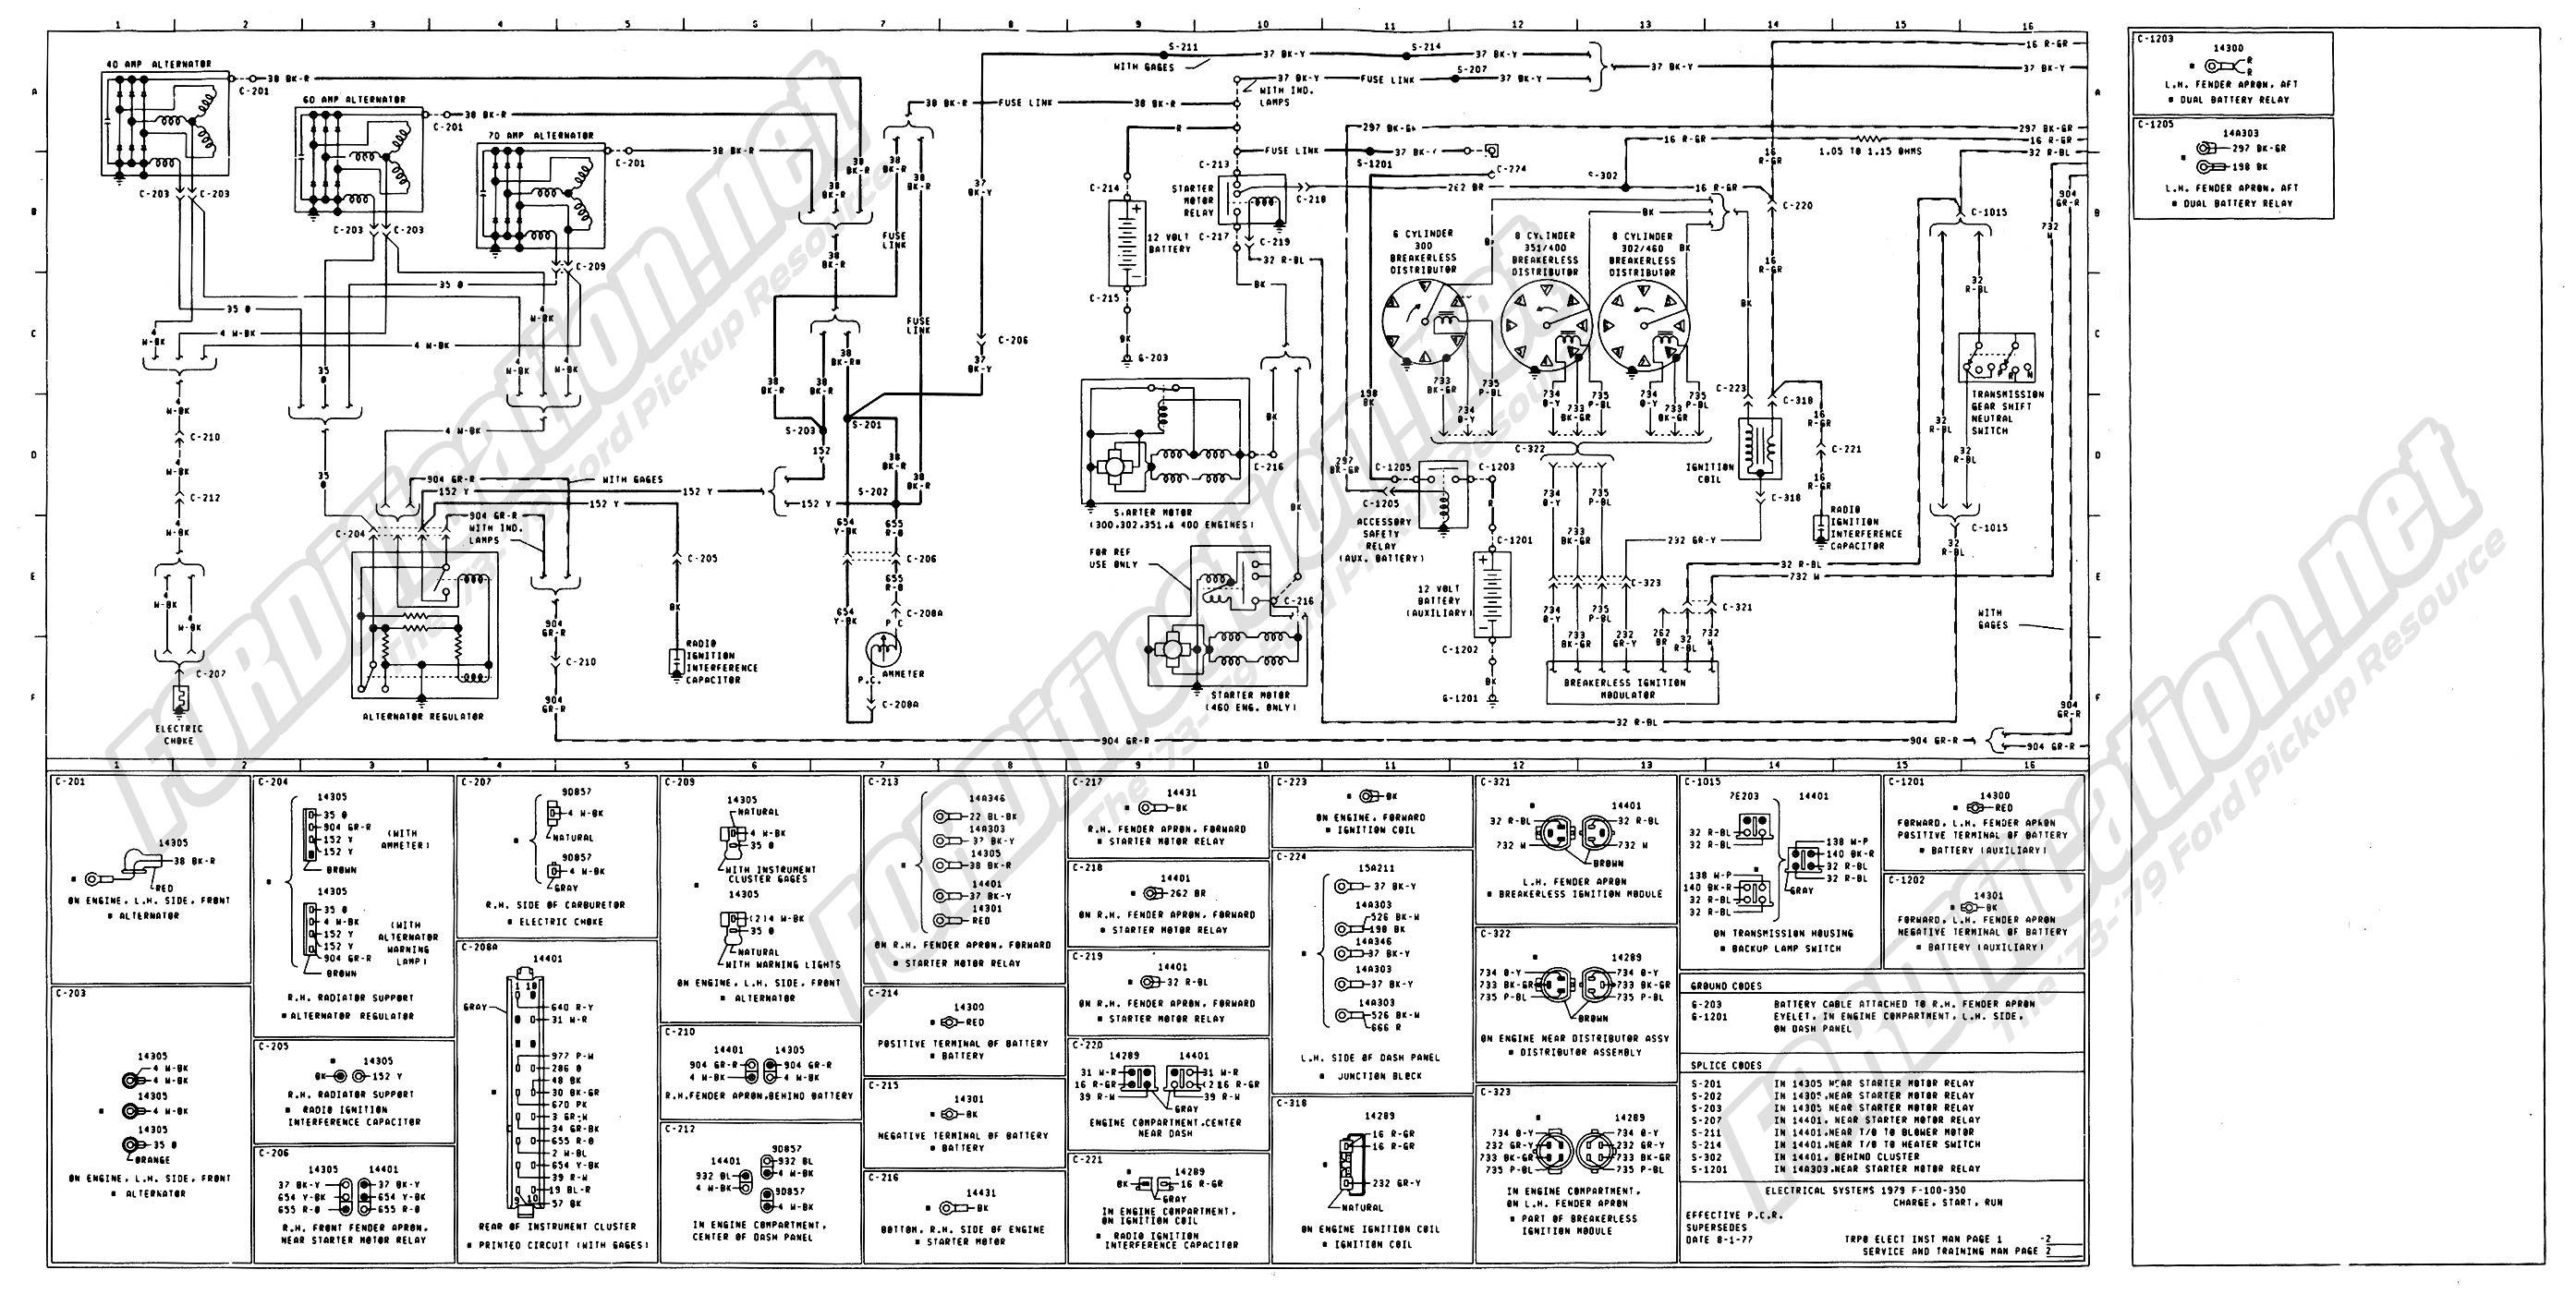 1979 ranchero engine diagram wiring diagram 1979 ford ranchero wiring diagram wiring diagram 1979 ford ranchero wiring diagram wiring diagram user